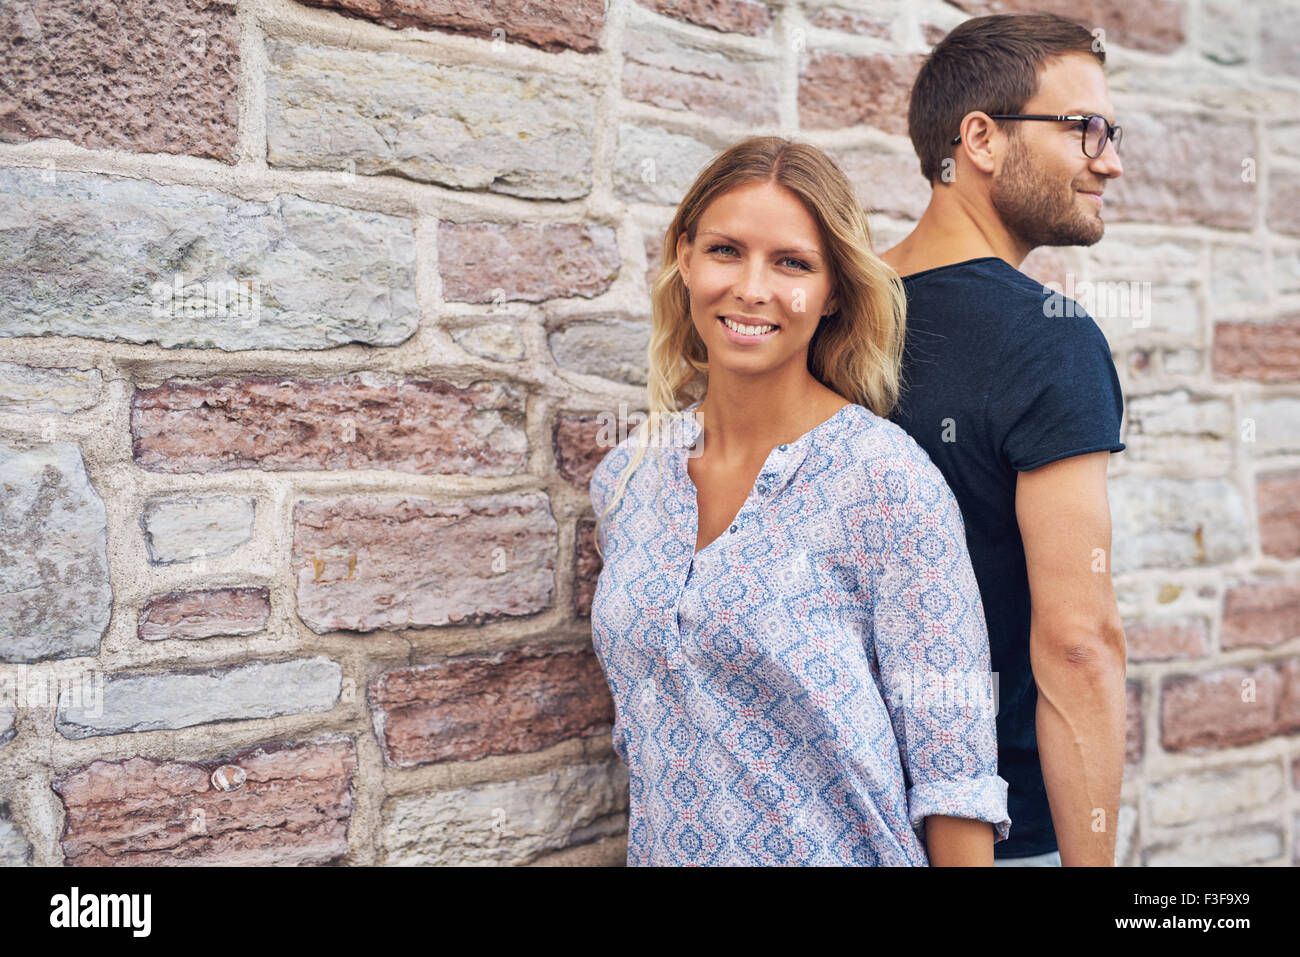 Couple debout dos contre l'autre contre un mur Photo Stock